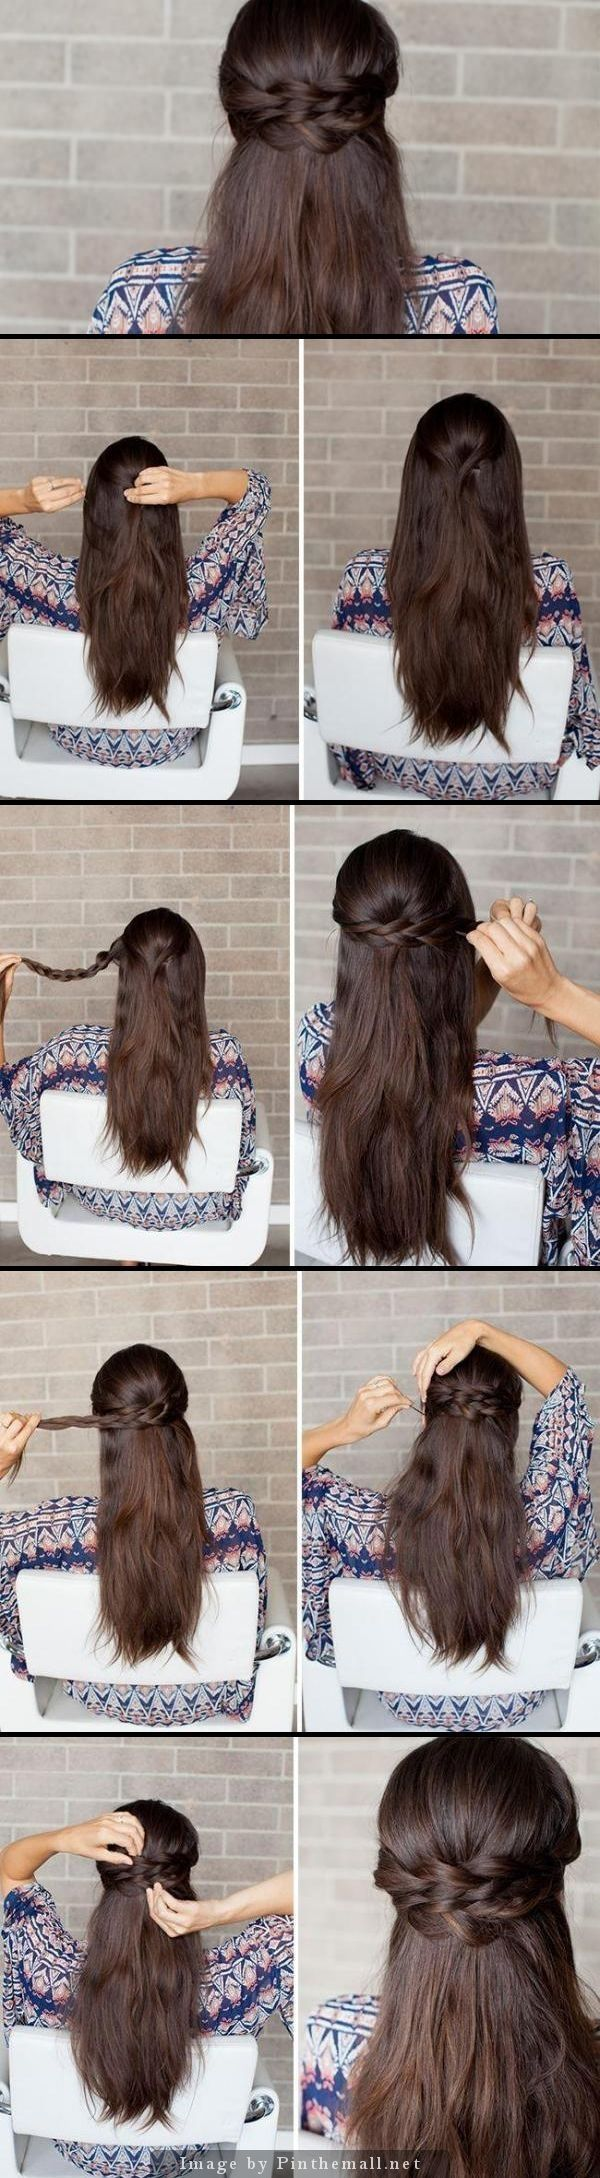 Here come the hair tutorials again! Always stay with prettydesigns and you will find more interesting and pretty stuff for everyday. Today, we will offer you so